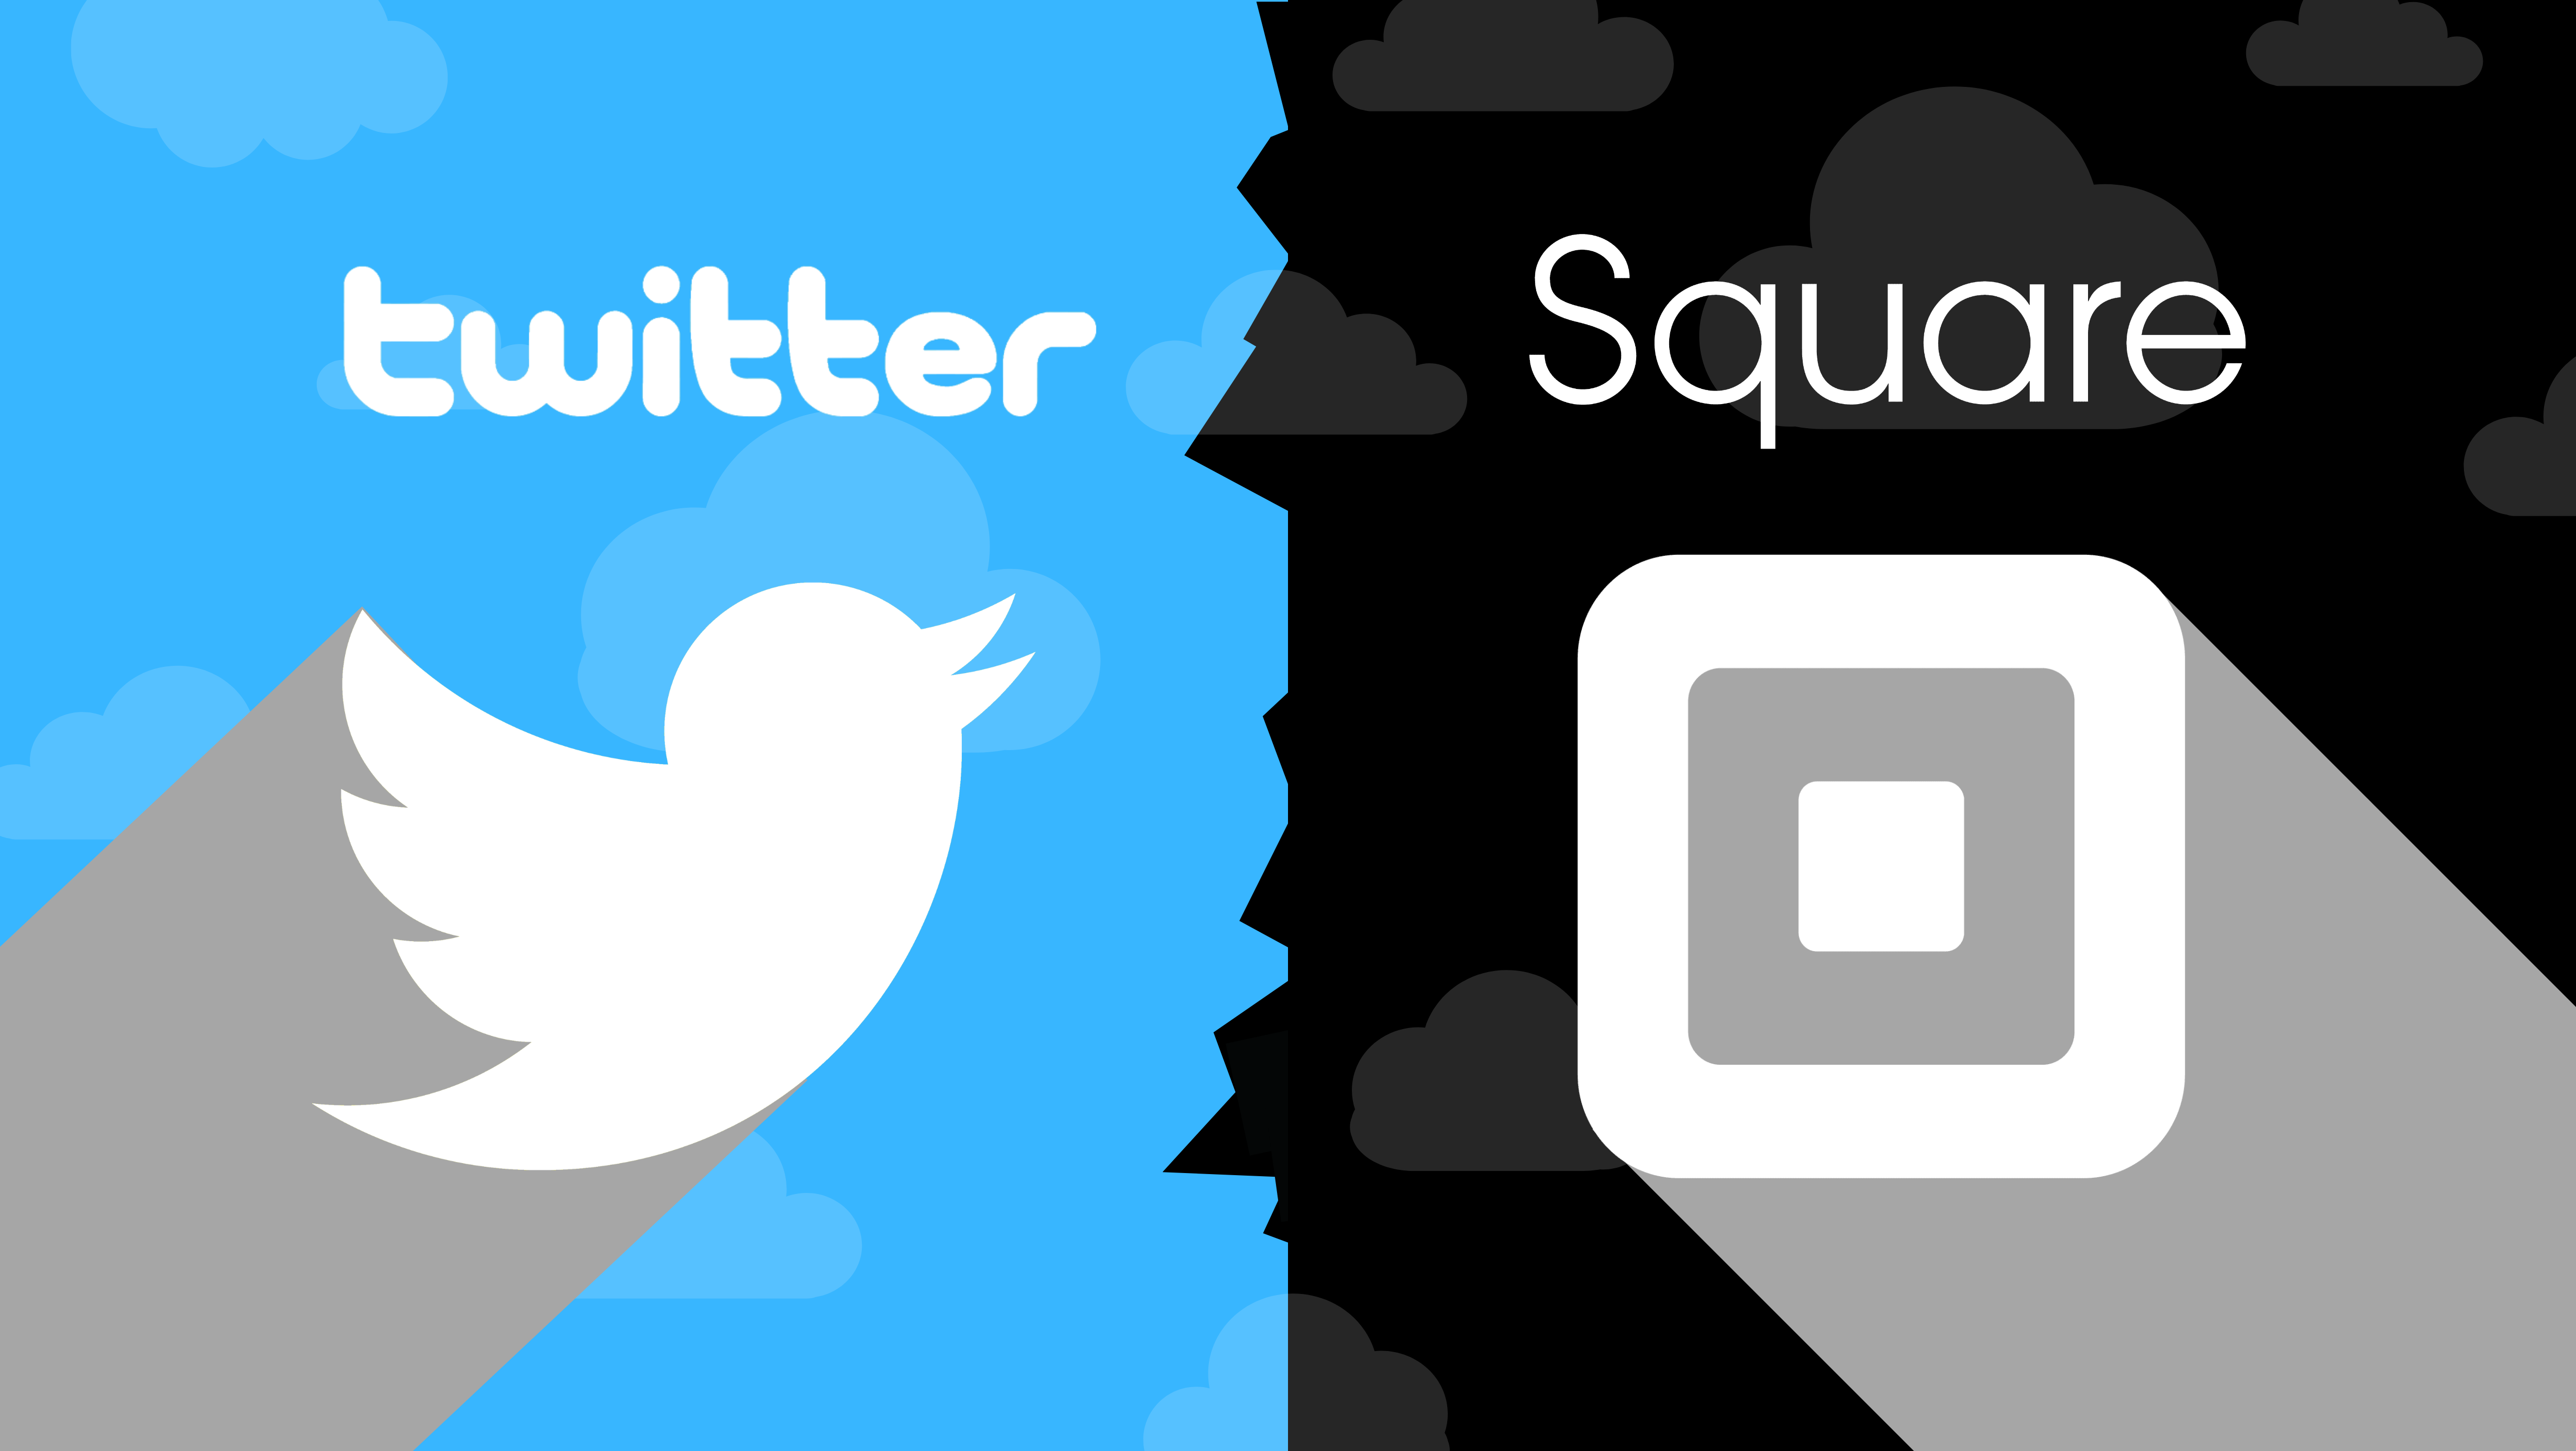 Could Twitter and Square Merge?